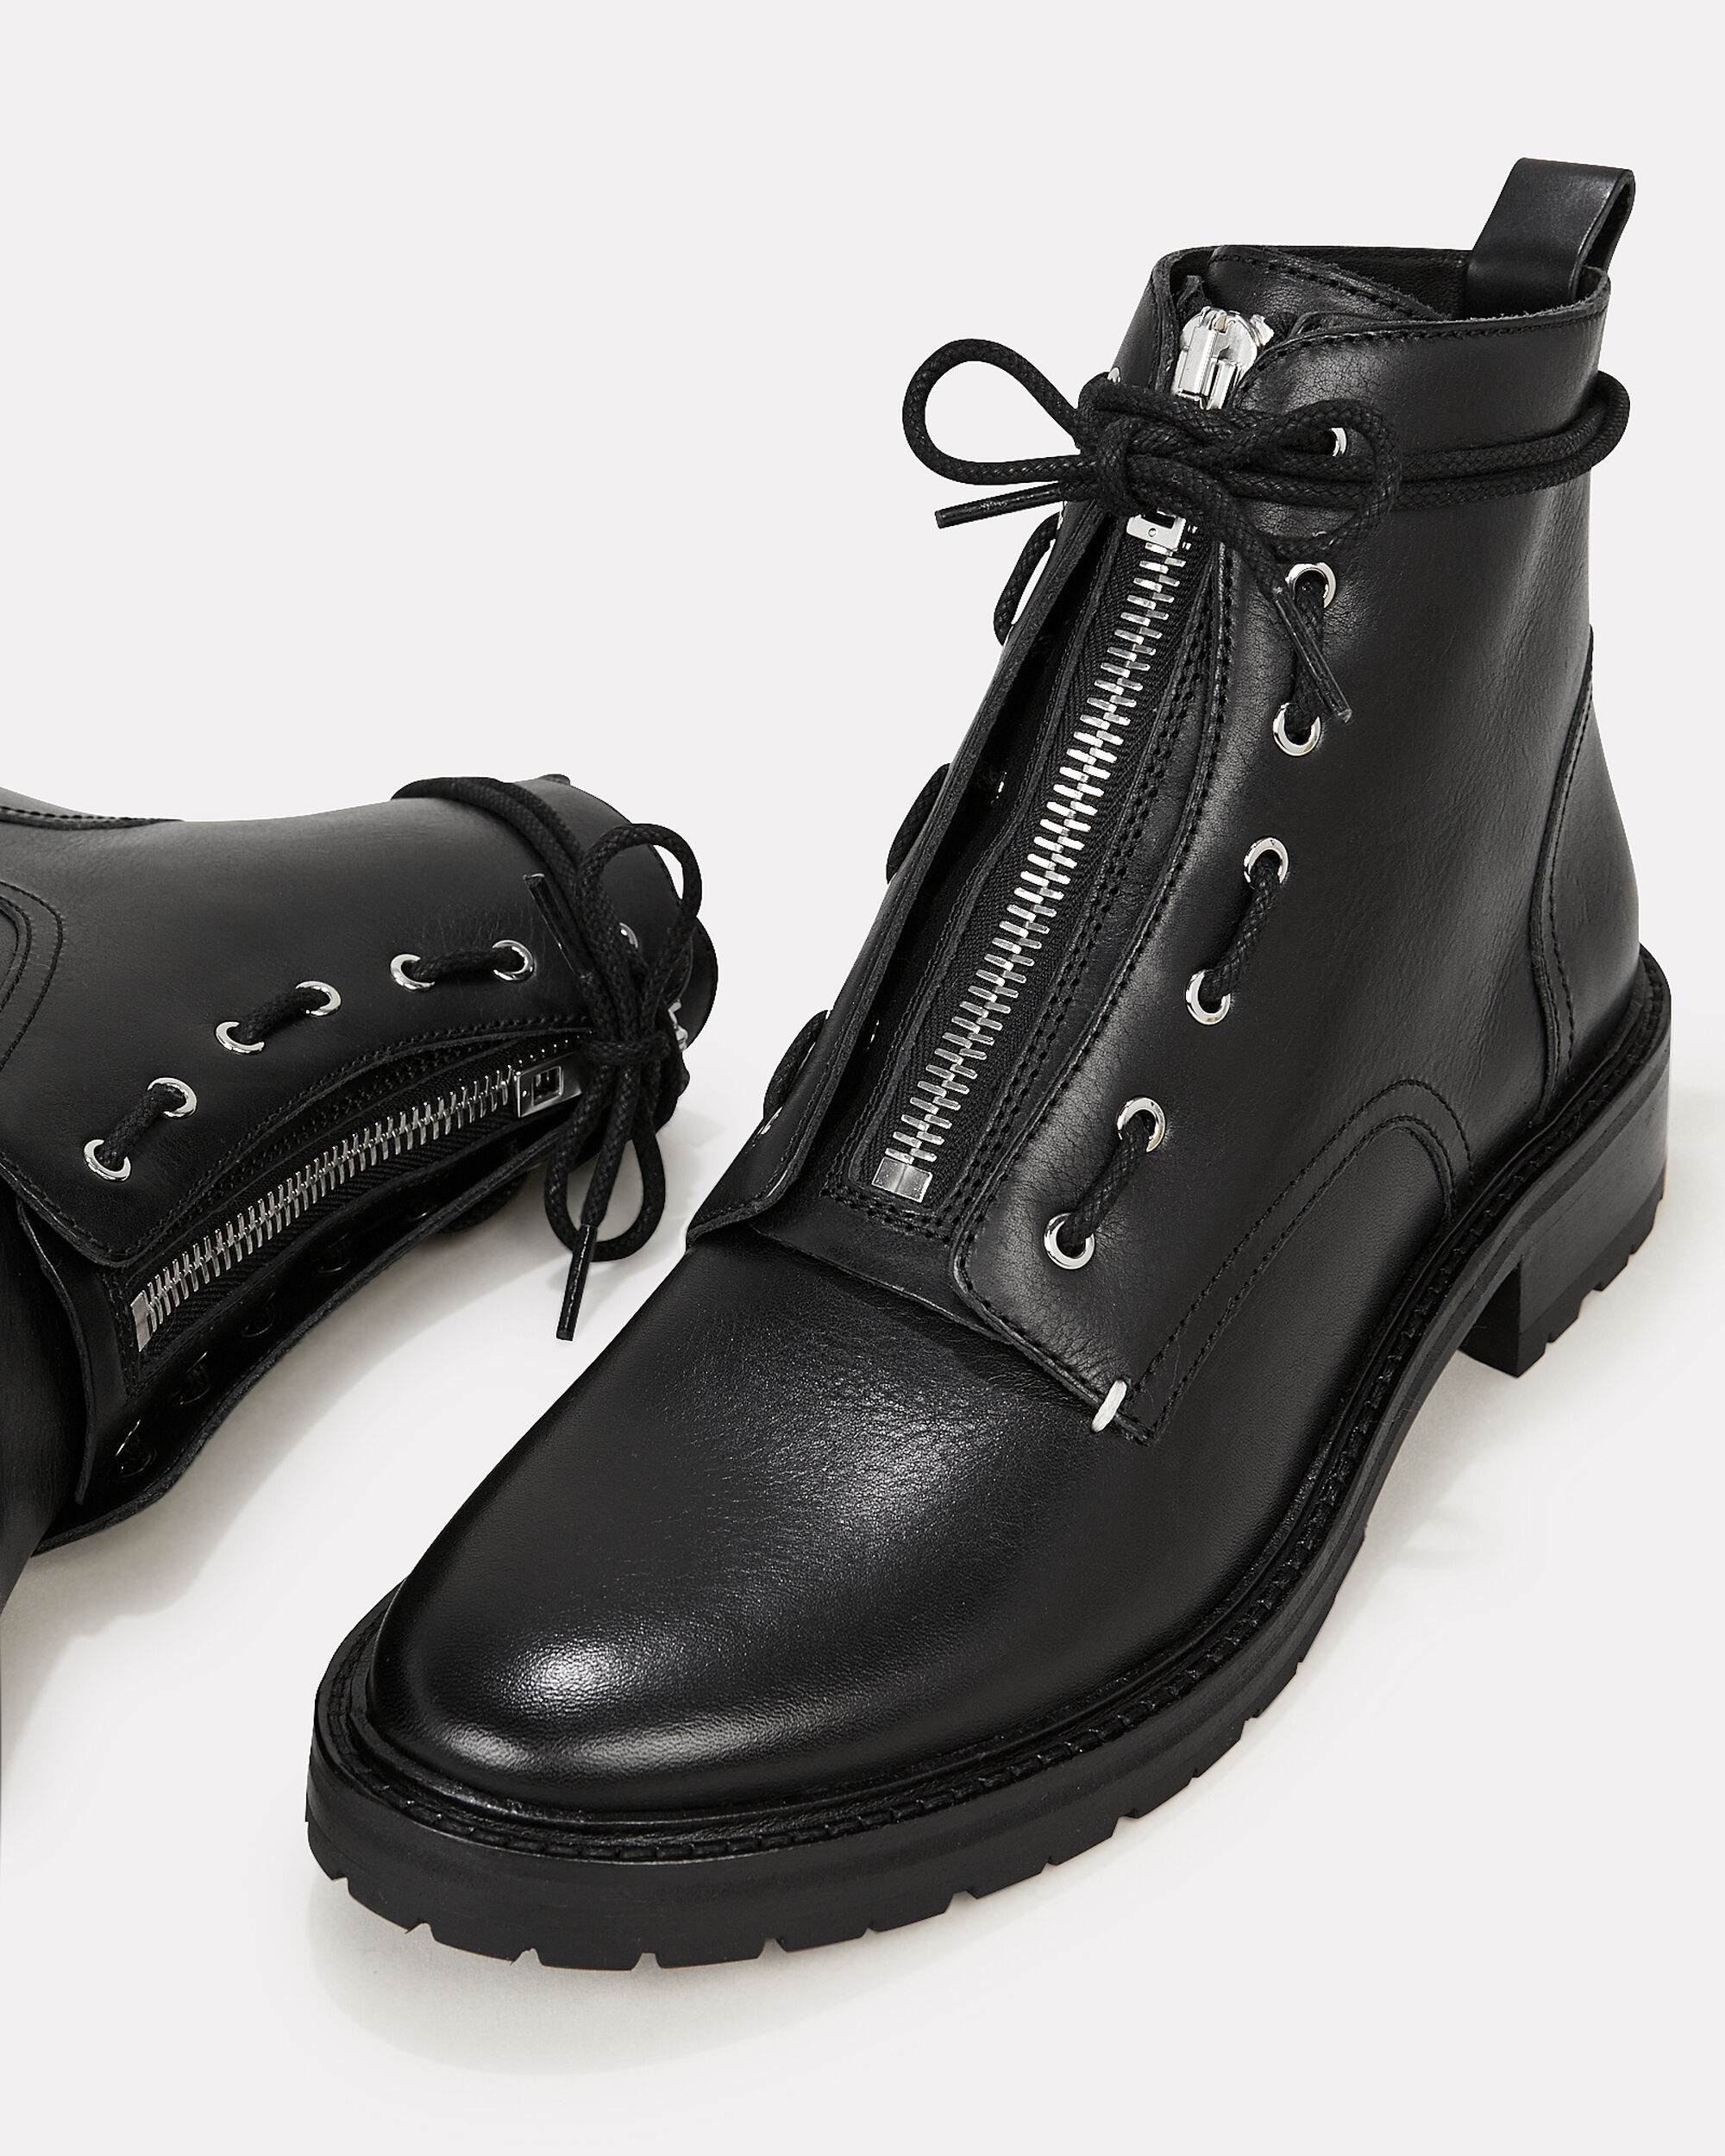 Cannon Black Boots, BLACK, hi-res